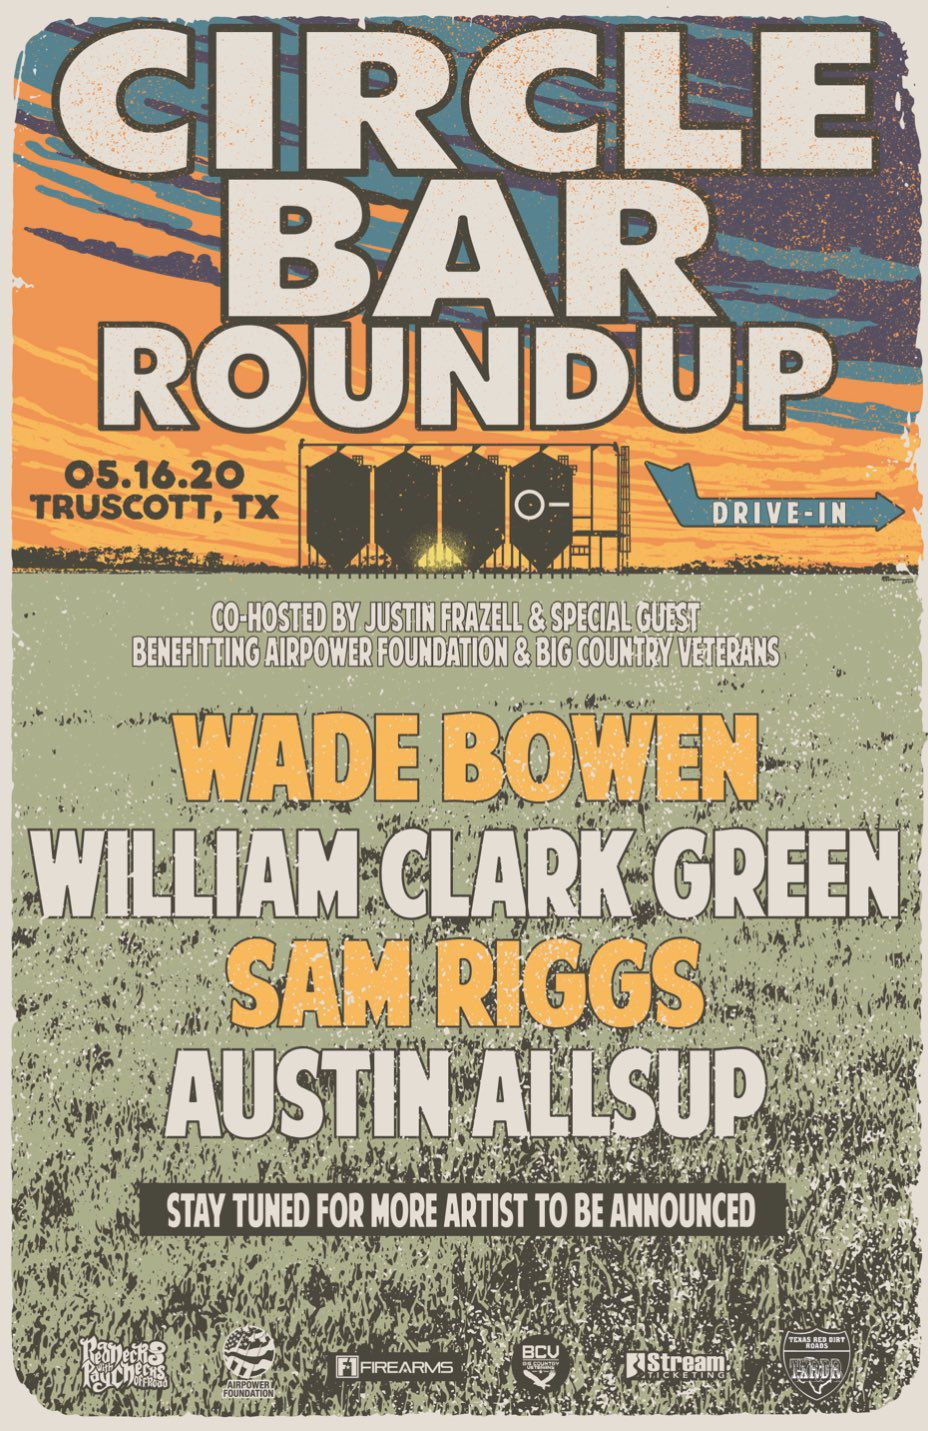 Wade Bowen, William Clark Green, Sam Riggs and Austin Allsup have been announced as the headliners for Circle Bar Roundup, a drive-in concert in Knox County on May 16, 2020.